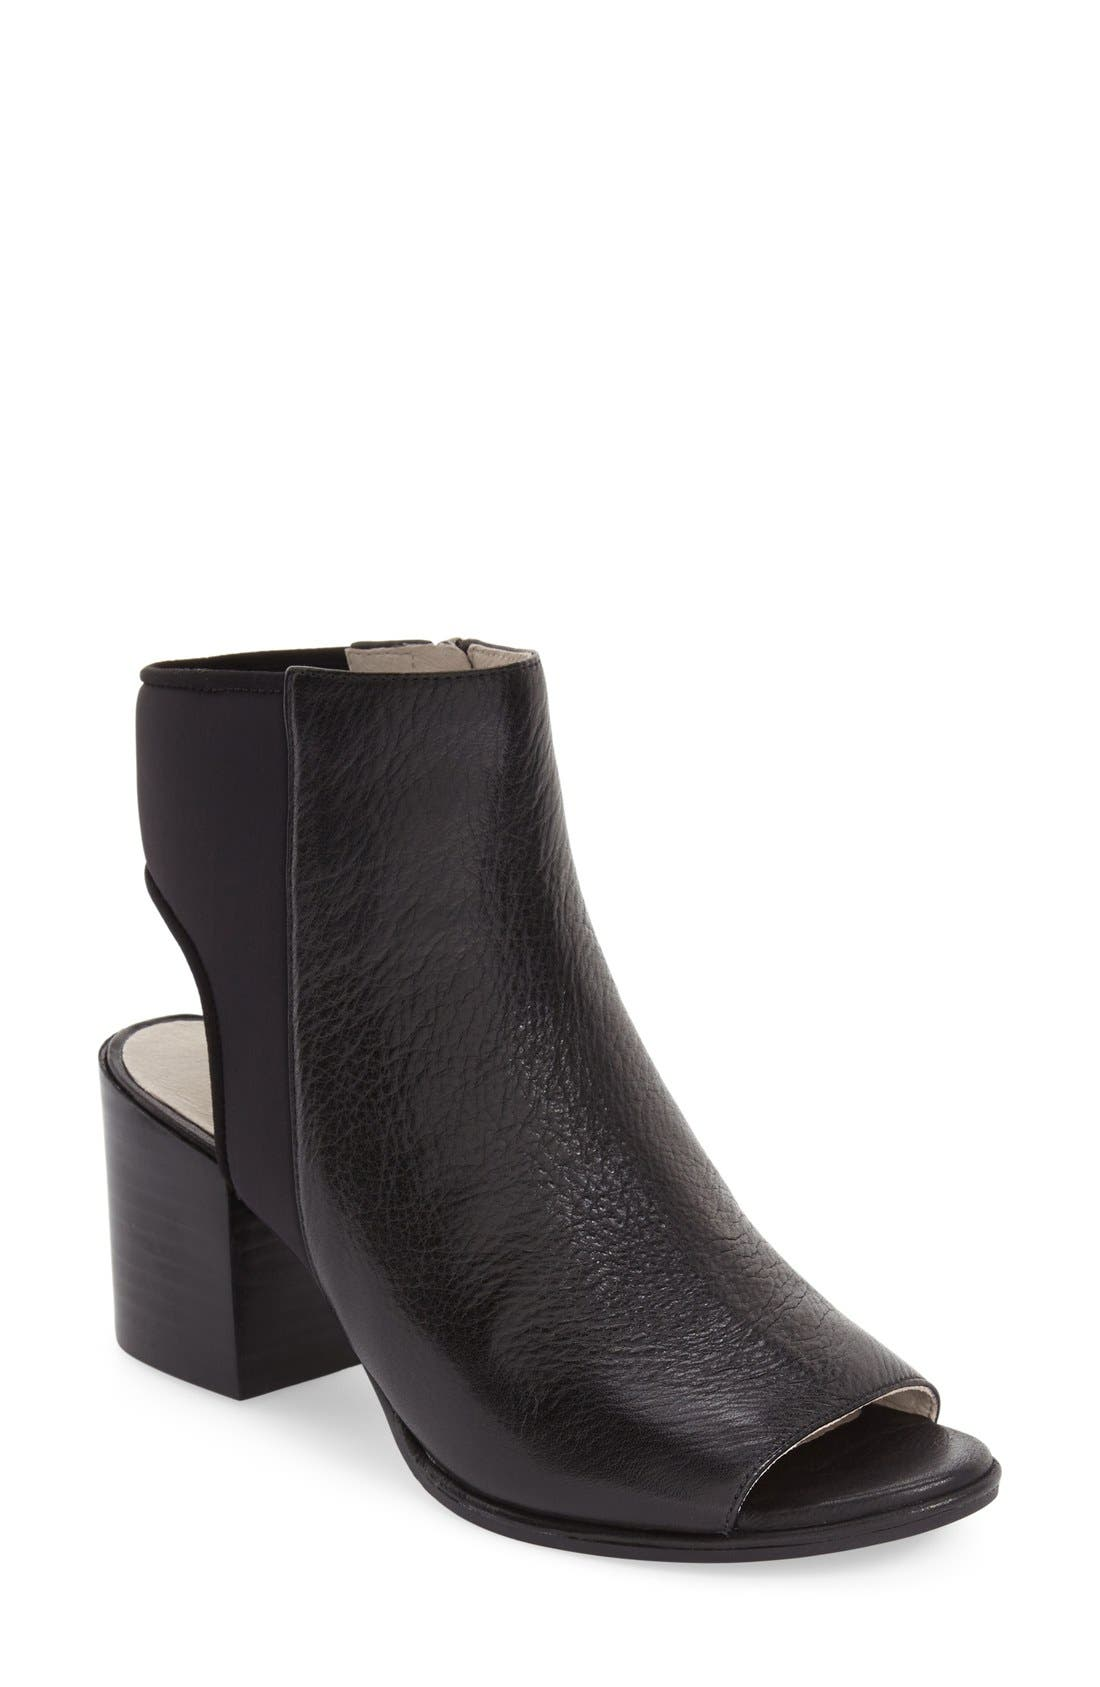 Main Image - Kenneth Cole New York 'Charlo' Open Toe Bootie (Women)